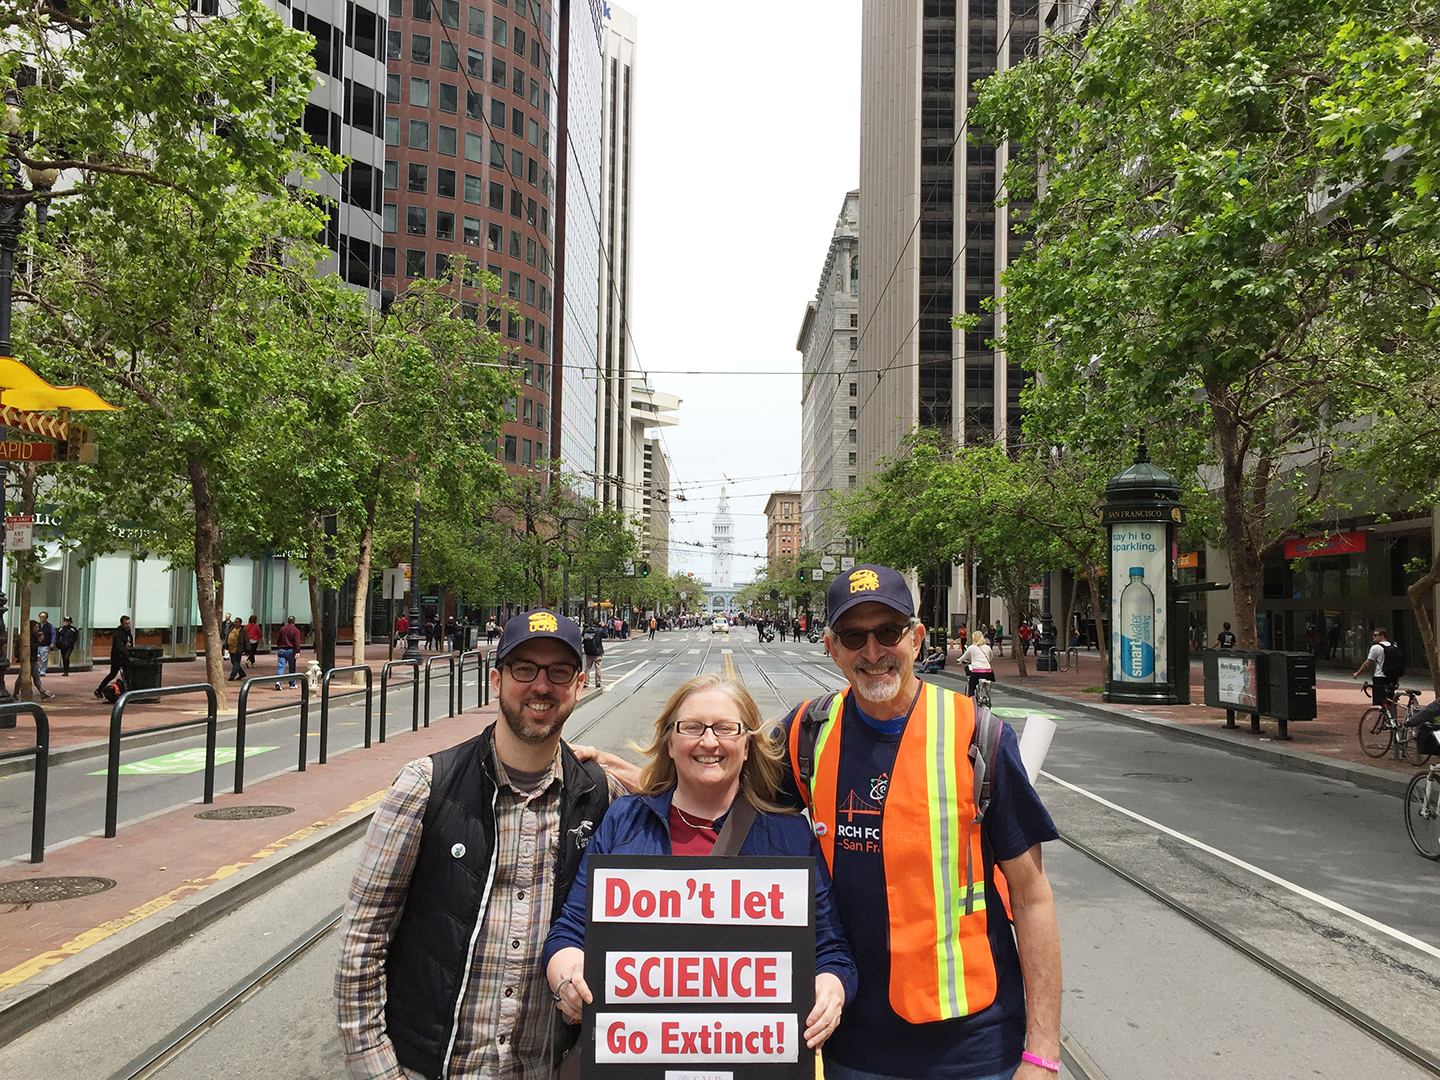 Dave Evans, Pat Holroyd and Mark at the March for Science 2017